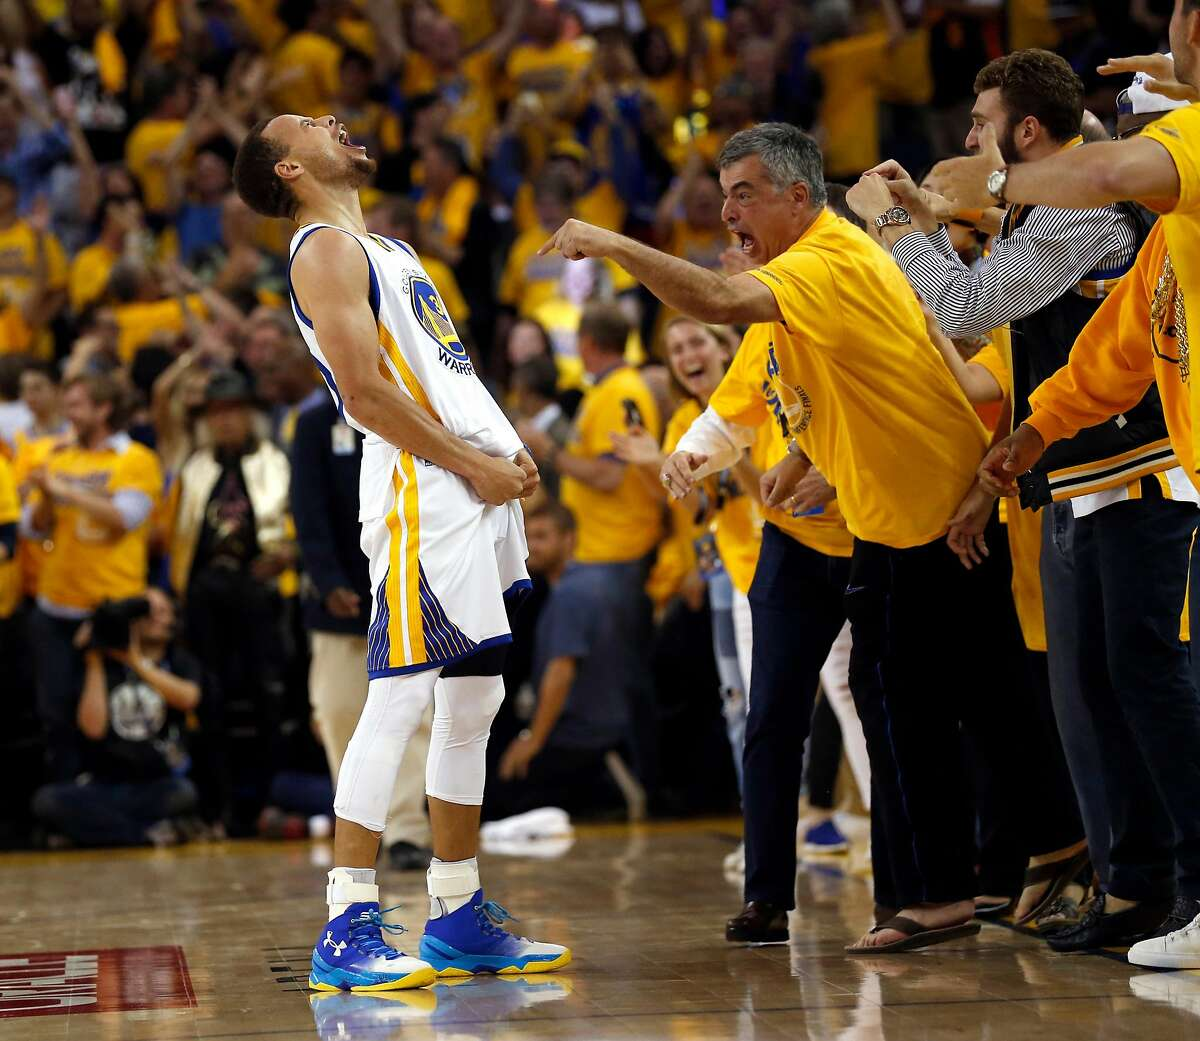 Golden State Warriors' Stephen Curry and Apple's Eddy Cue celebrates Curry's 3-pointer in final minute of 96-88 win over Oklahoma City Thunder in Game 7 of NBA Playoffs' Western Conference finals at Oracle Arena in Oakland, Calif., on Monday, May 30, 2016.